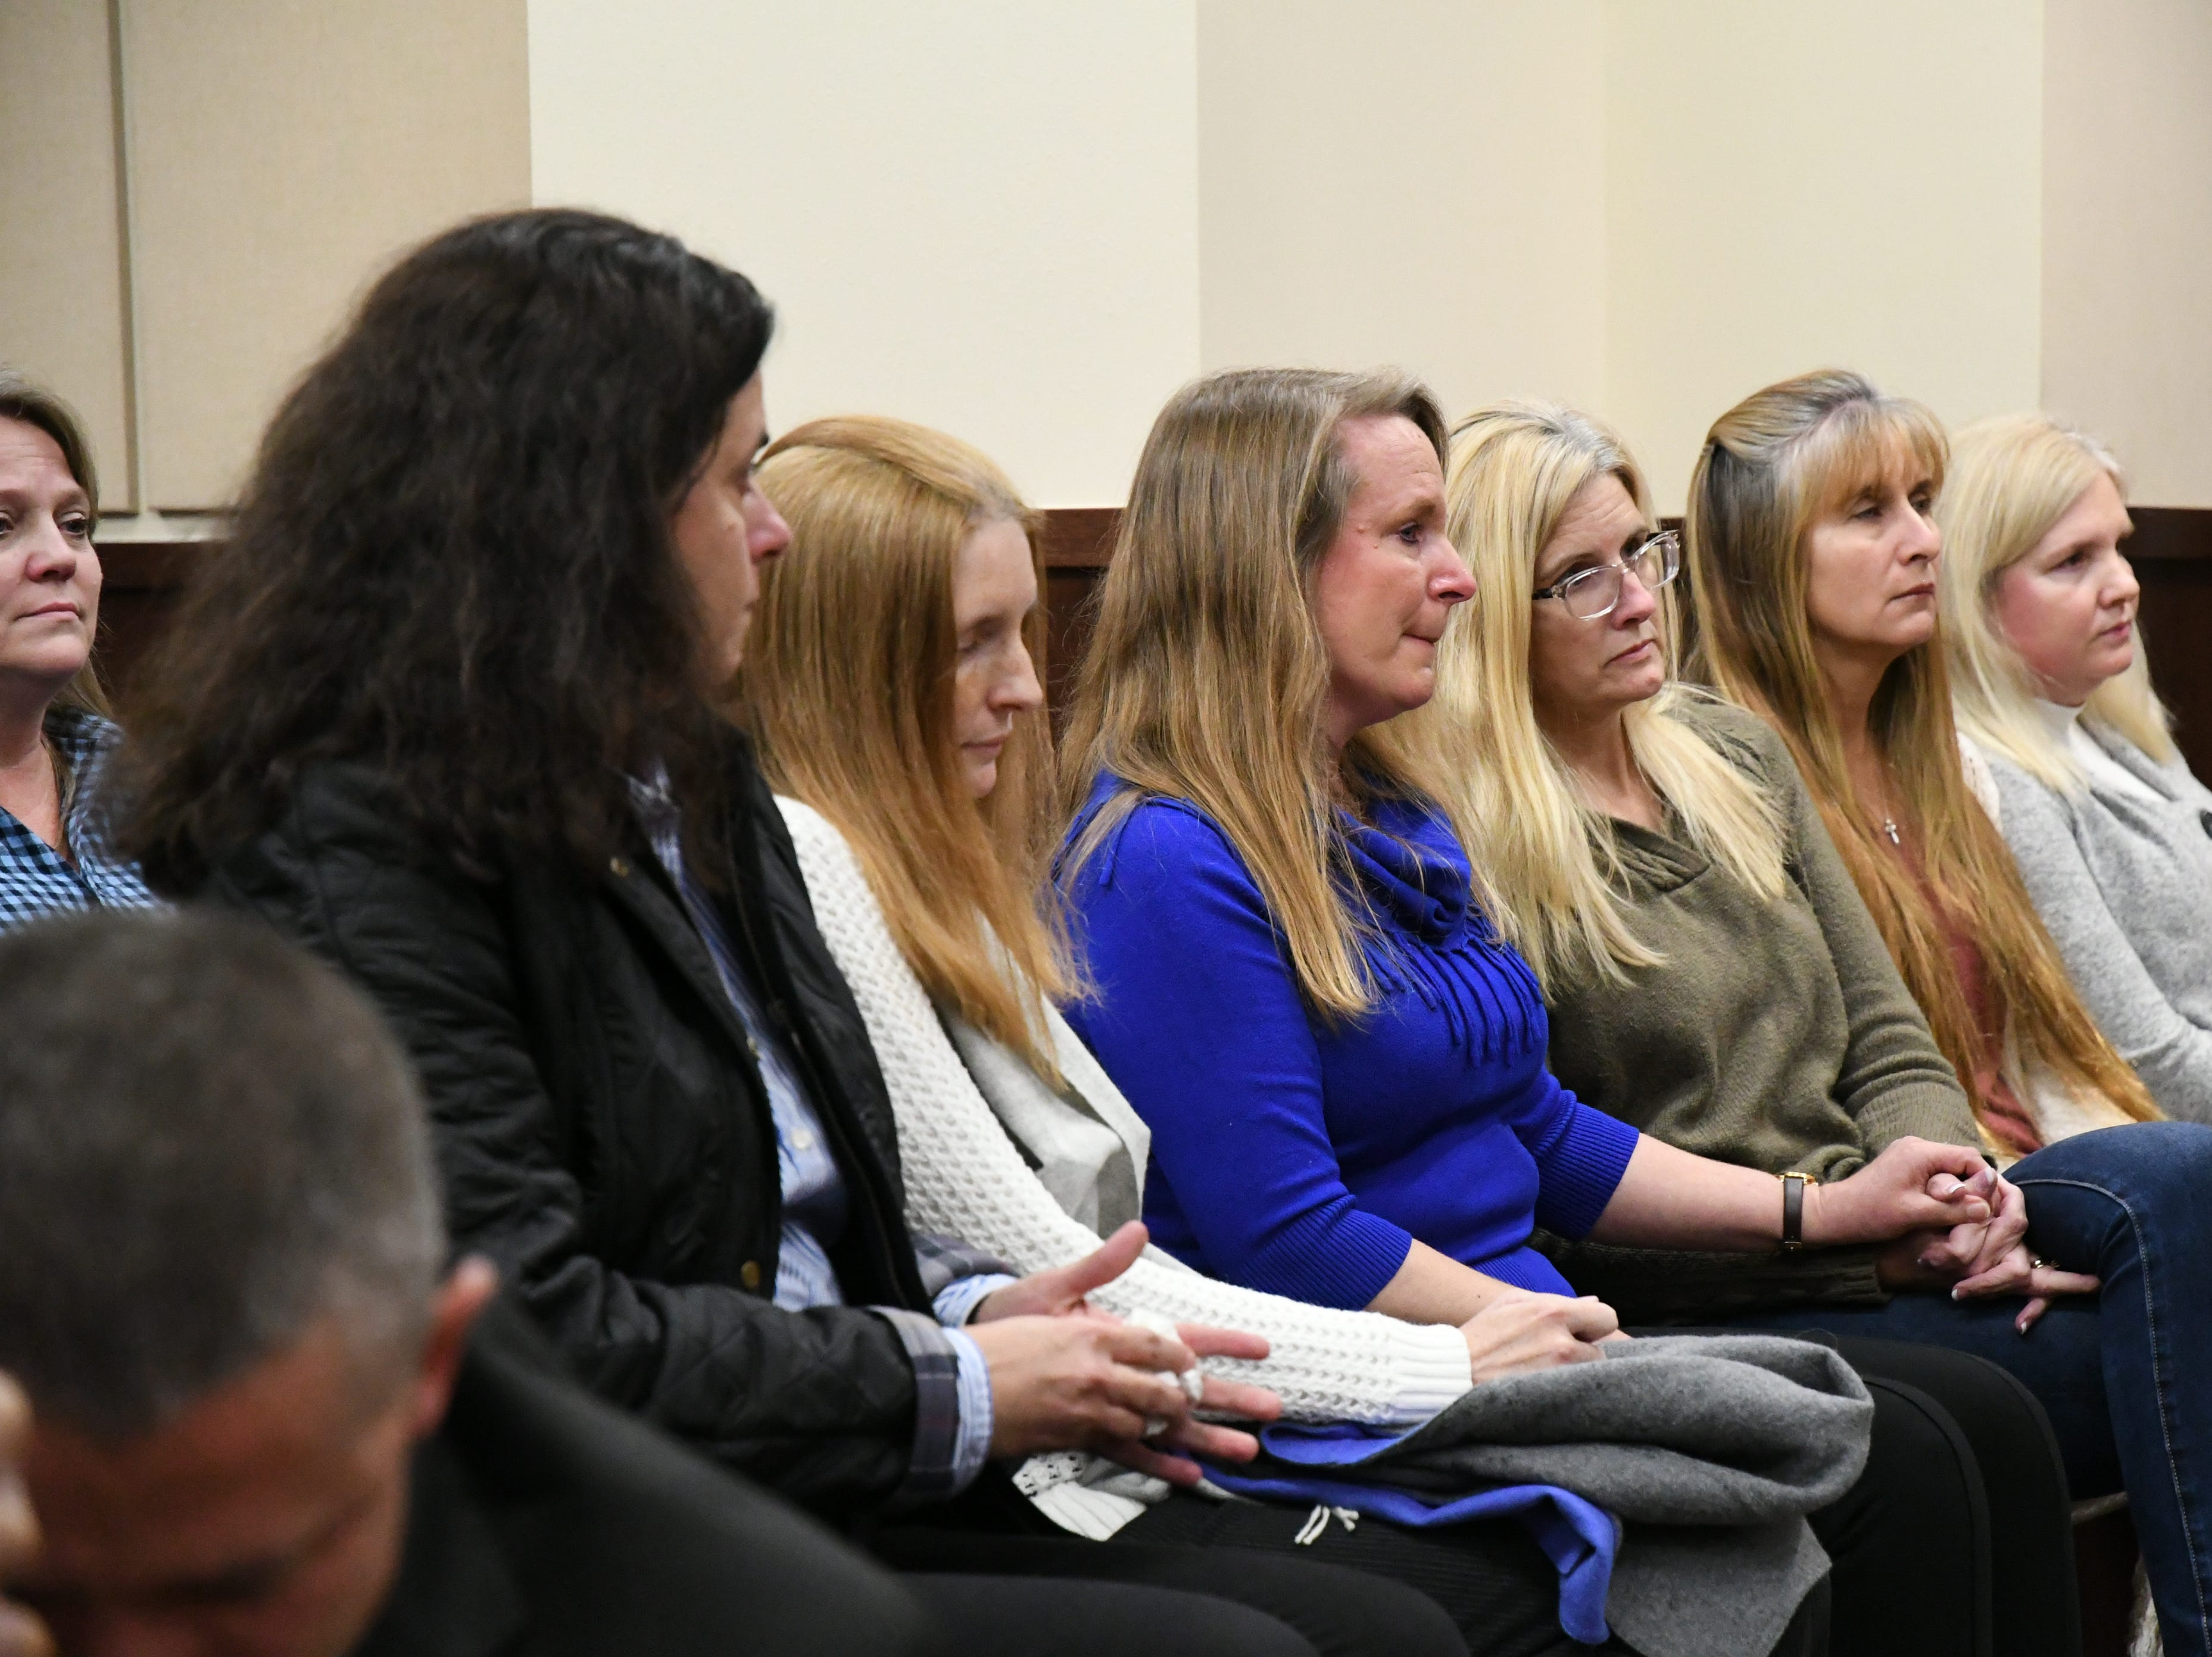 Family and friends of Denise Williams sit quietly as the guilty verdicts are read in the trial against Denise Williams for the murder of her husband Mike Williams, the man who was shot and killed by his best friend, Friday, Dec. 14, 2018.